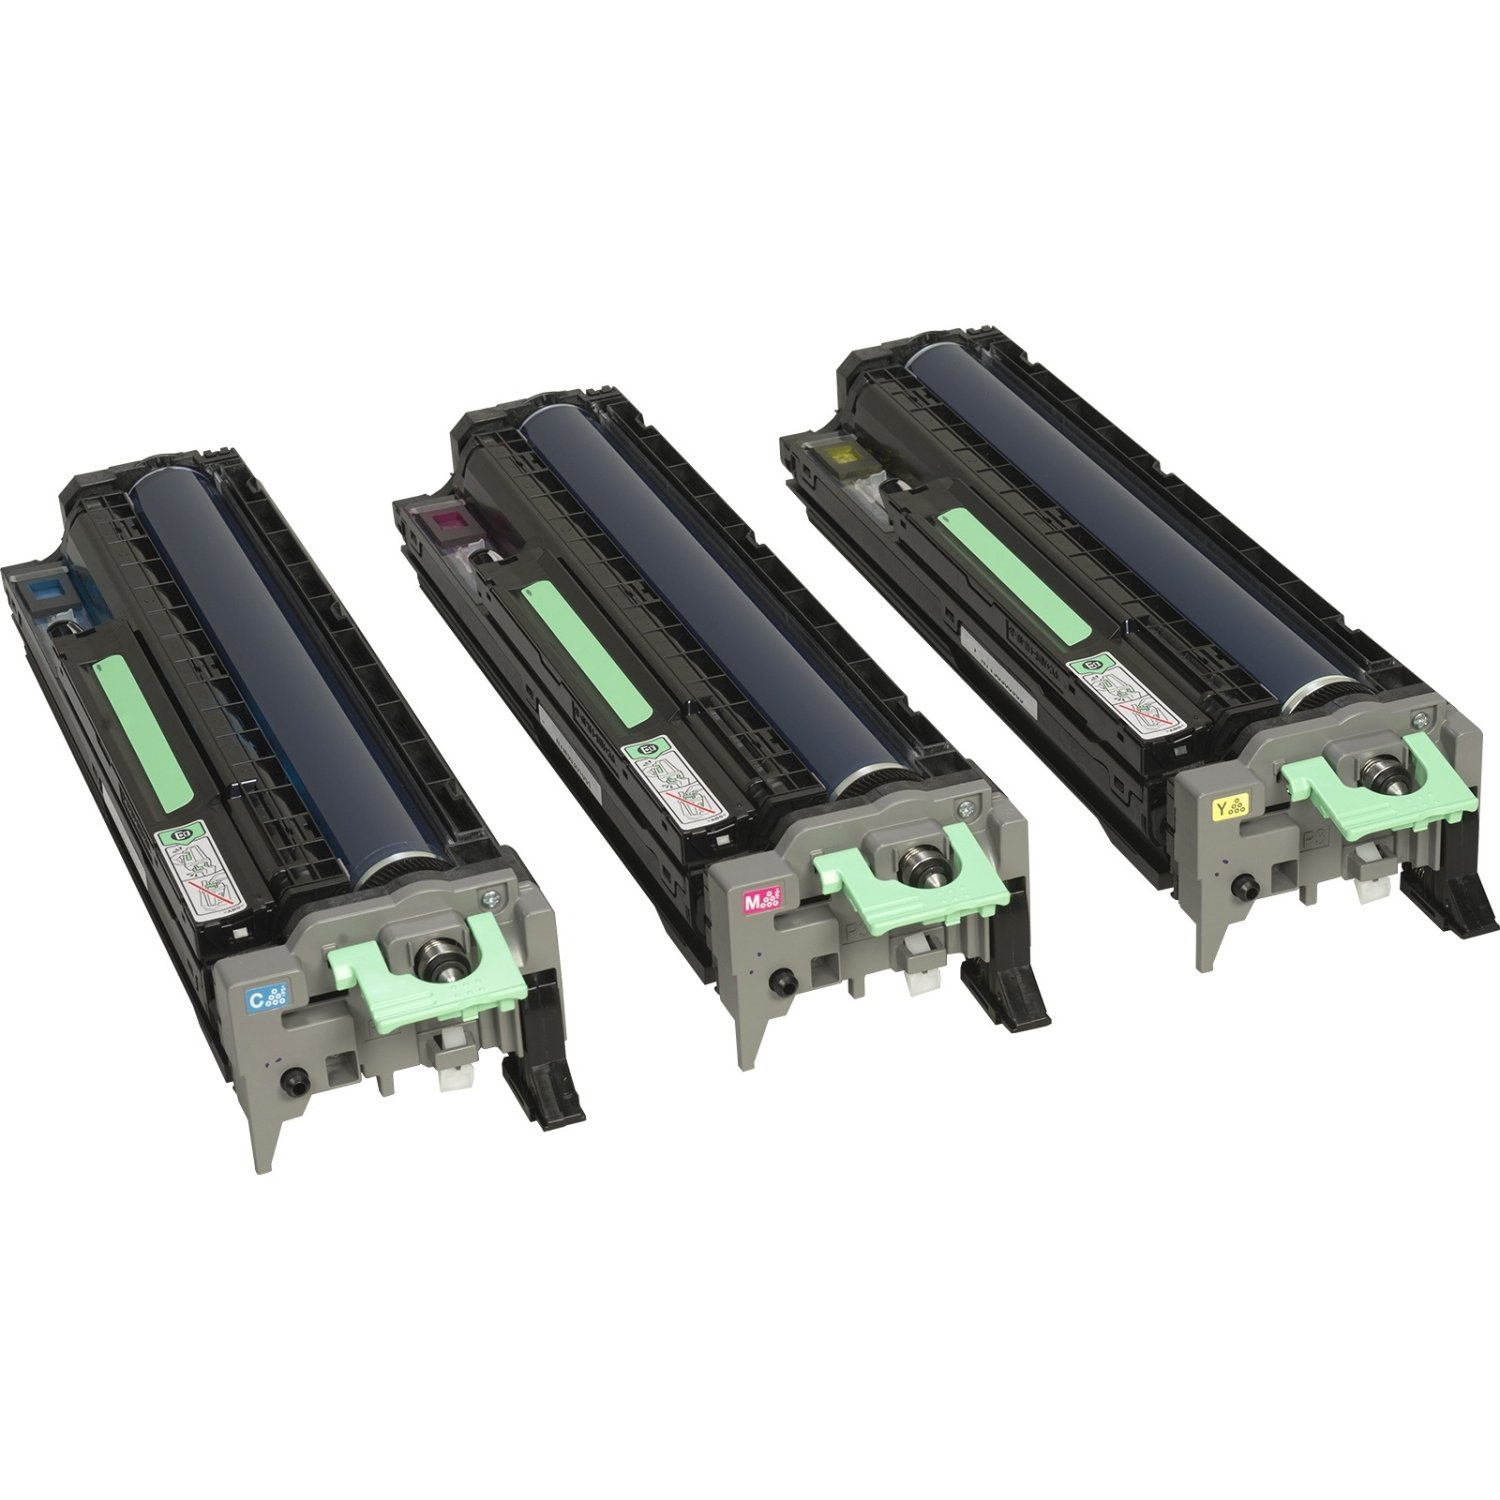 Ricoh Color Drum Unit Set, Includes 1 Each for C M Y, 60000 Yield (407096)